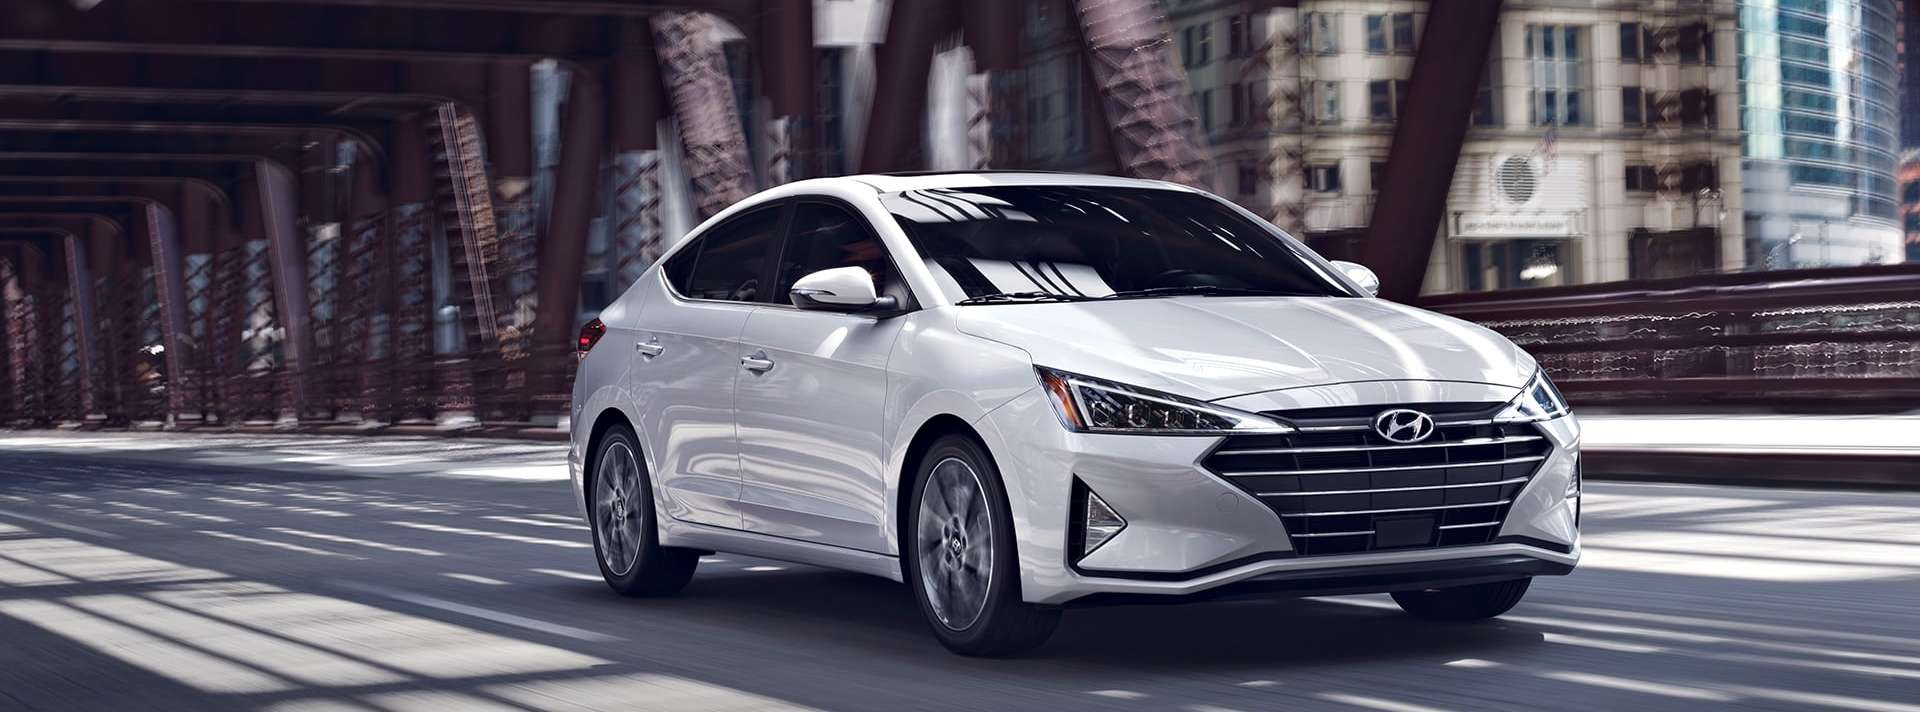 2020 Hyundai Elantra Leasing near Woodbridge, VA